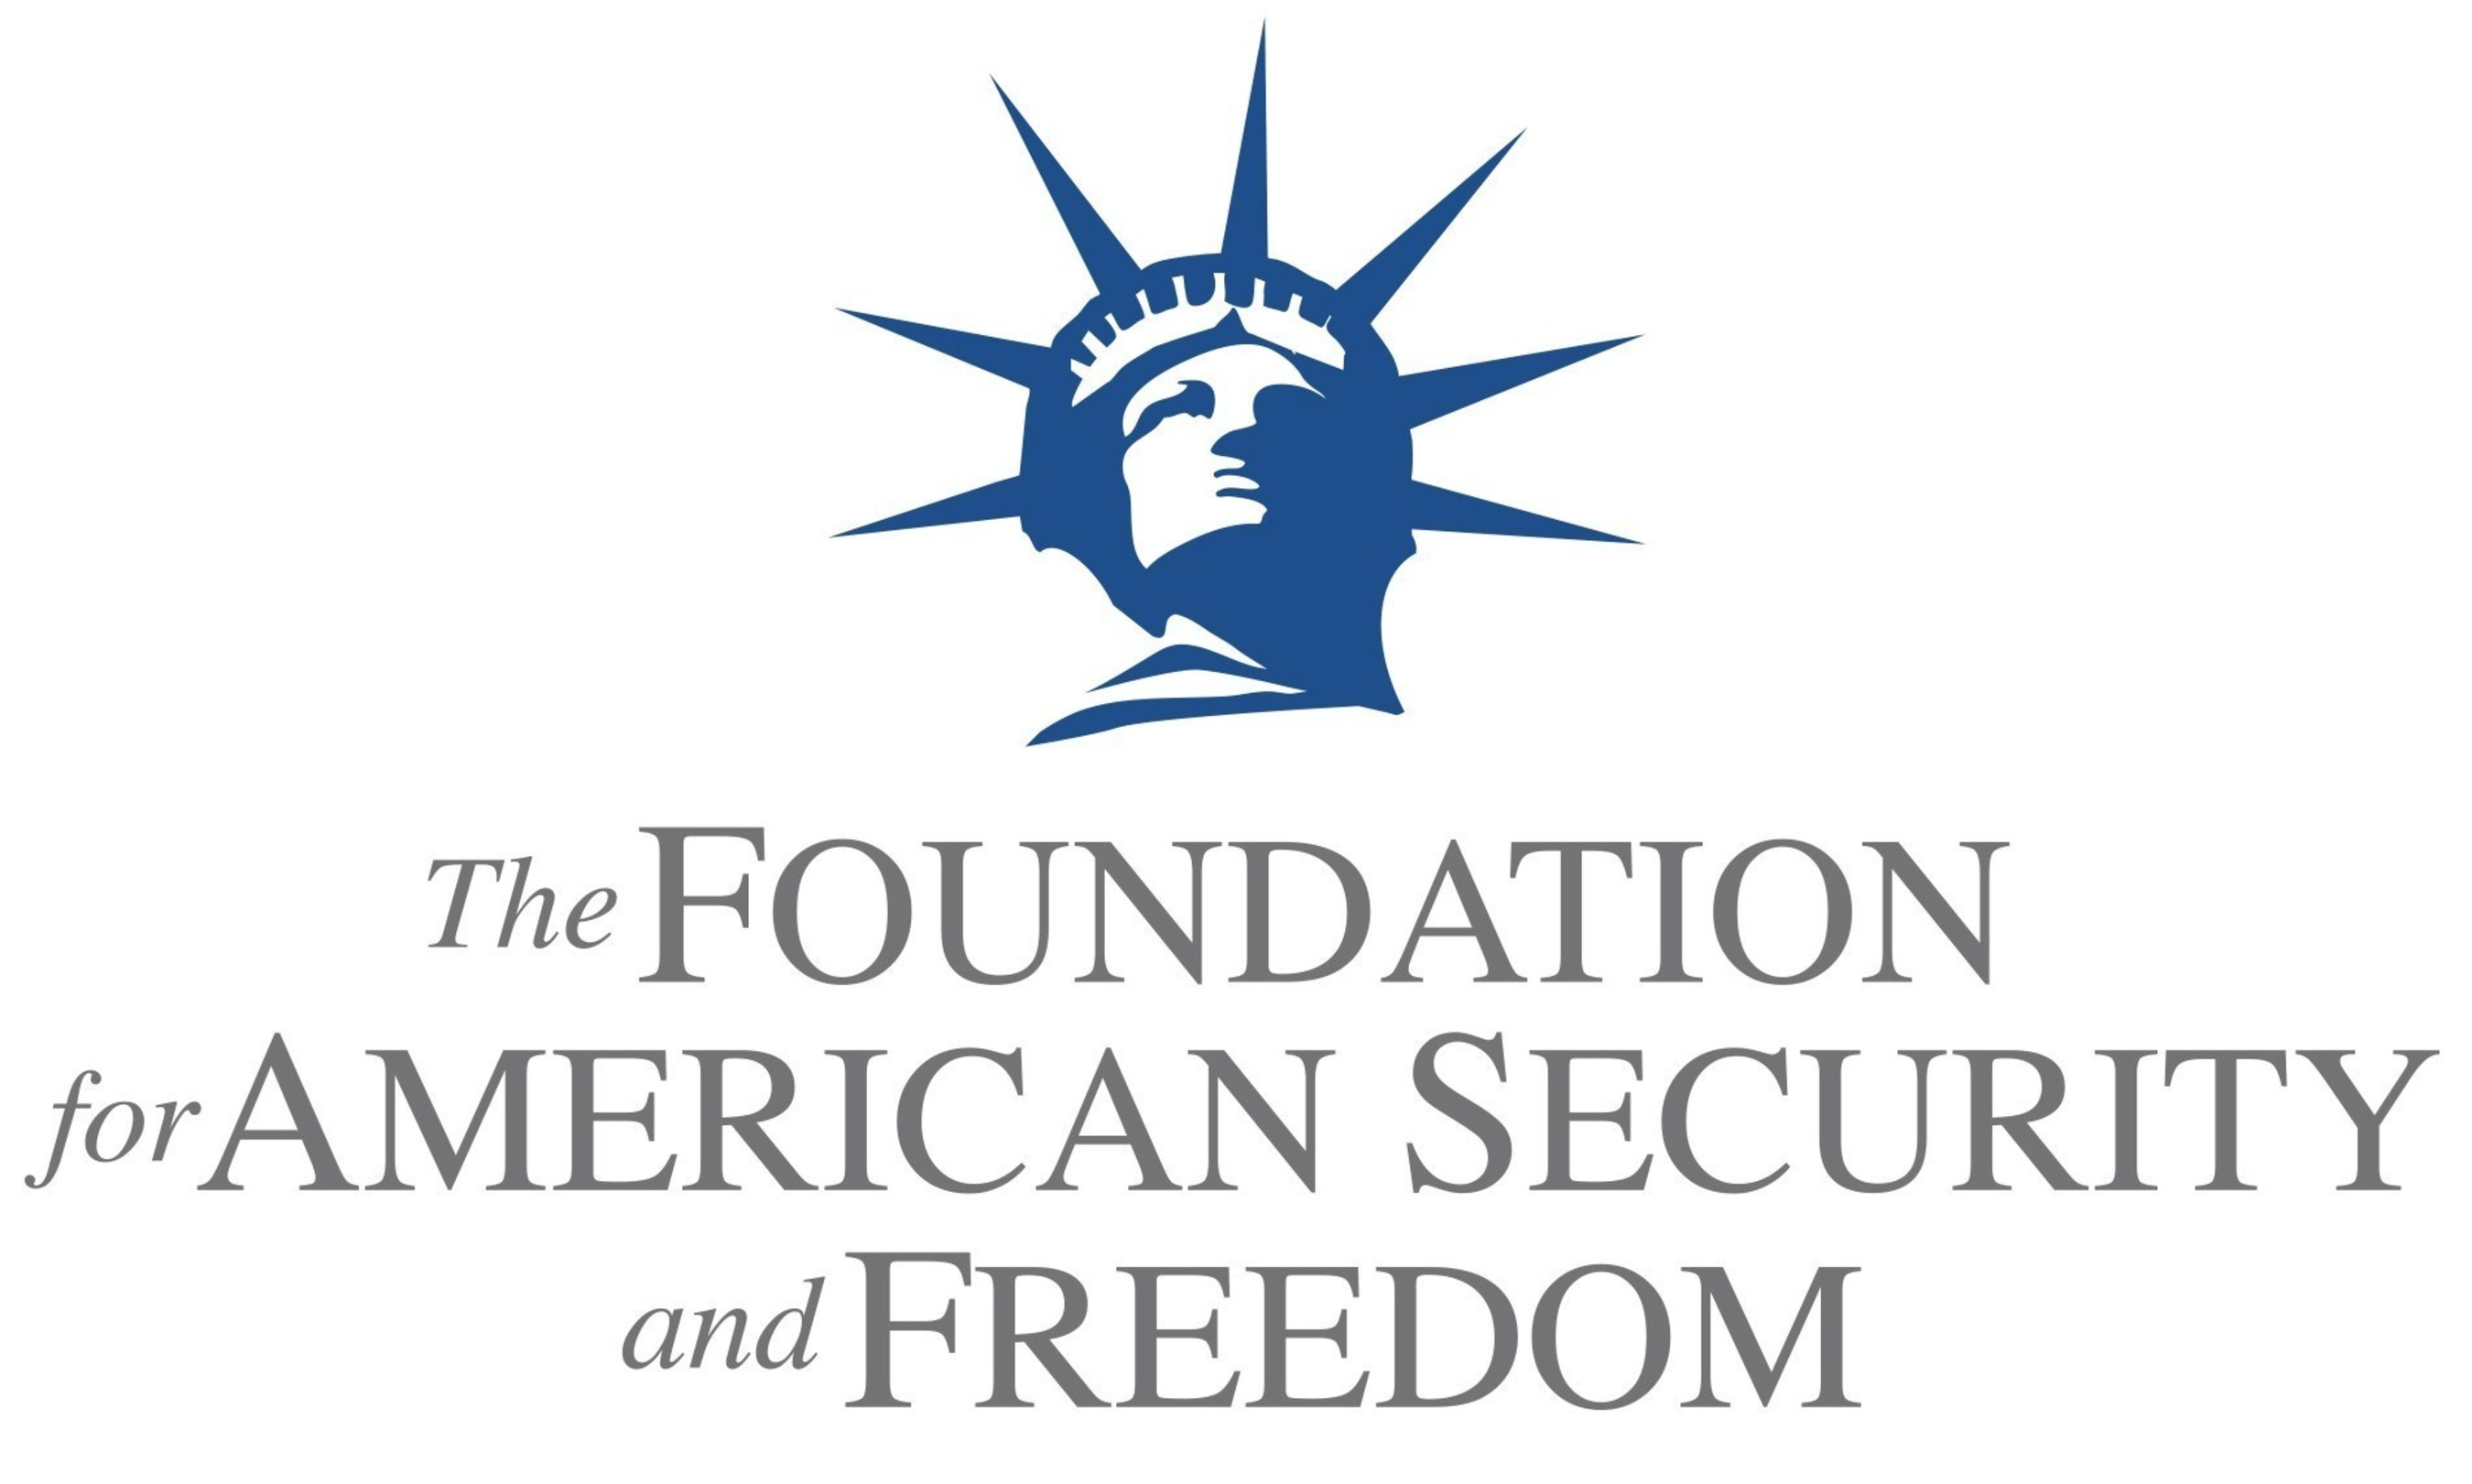 Foundation for American Security and Freedom